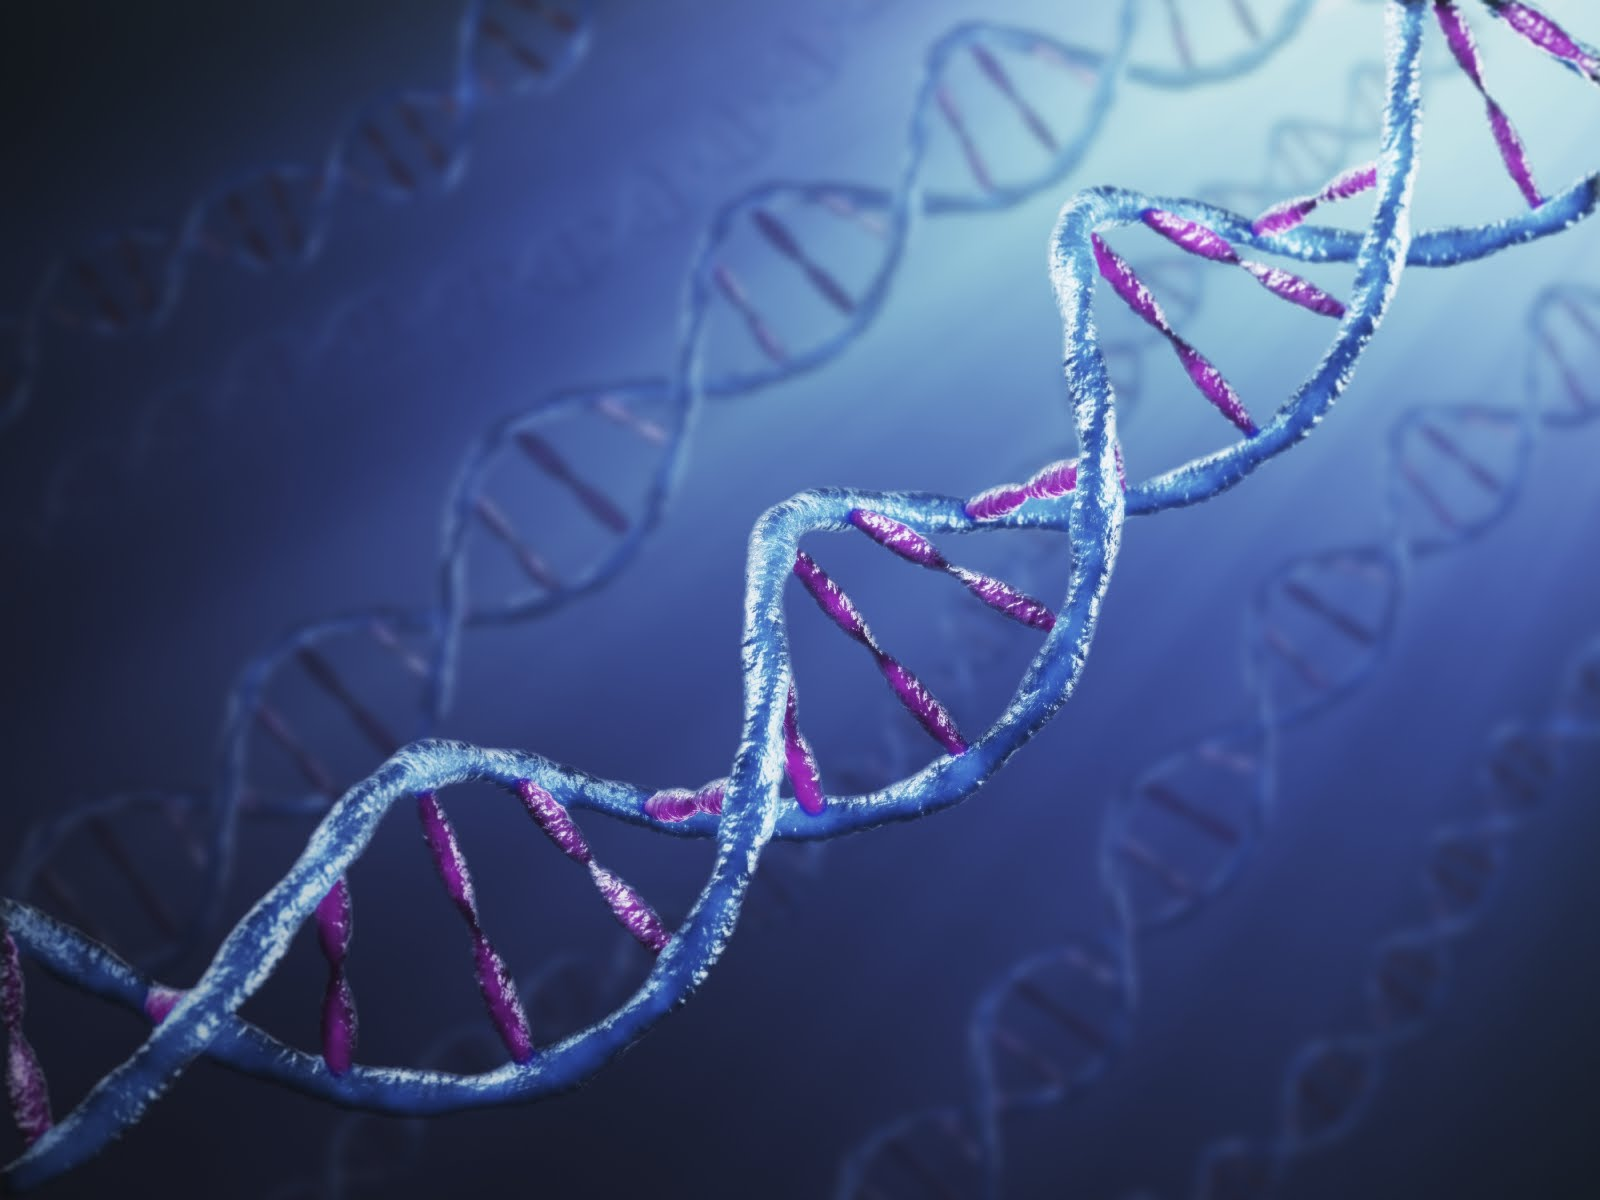 Research paper on genetic algorithm